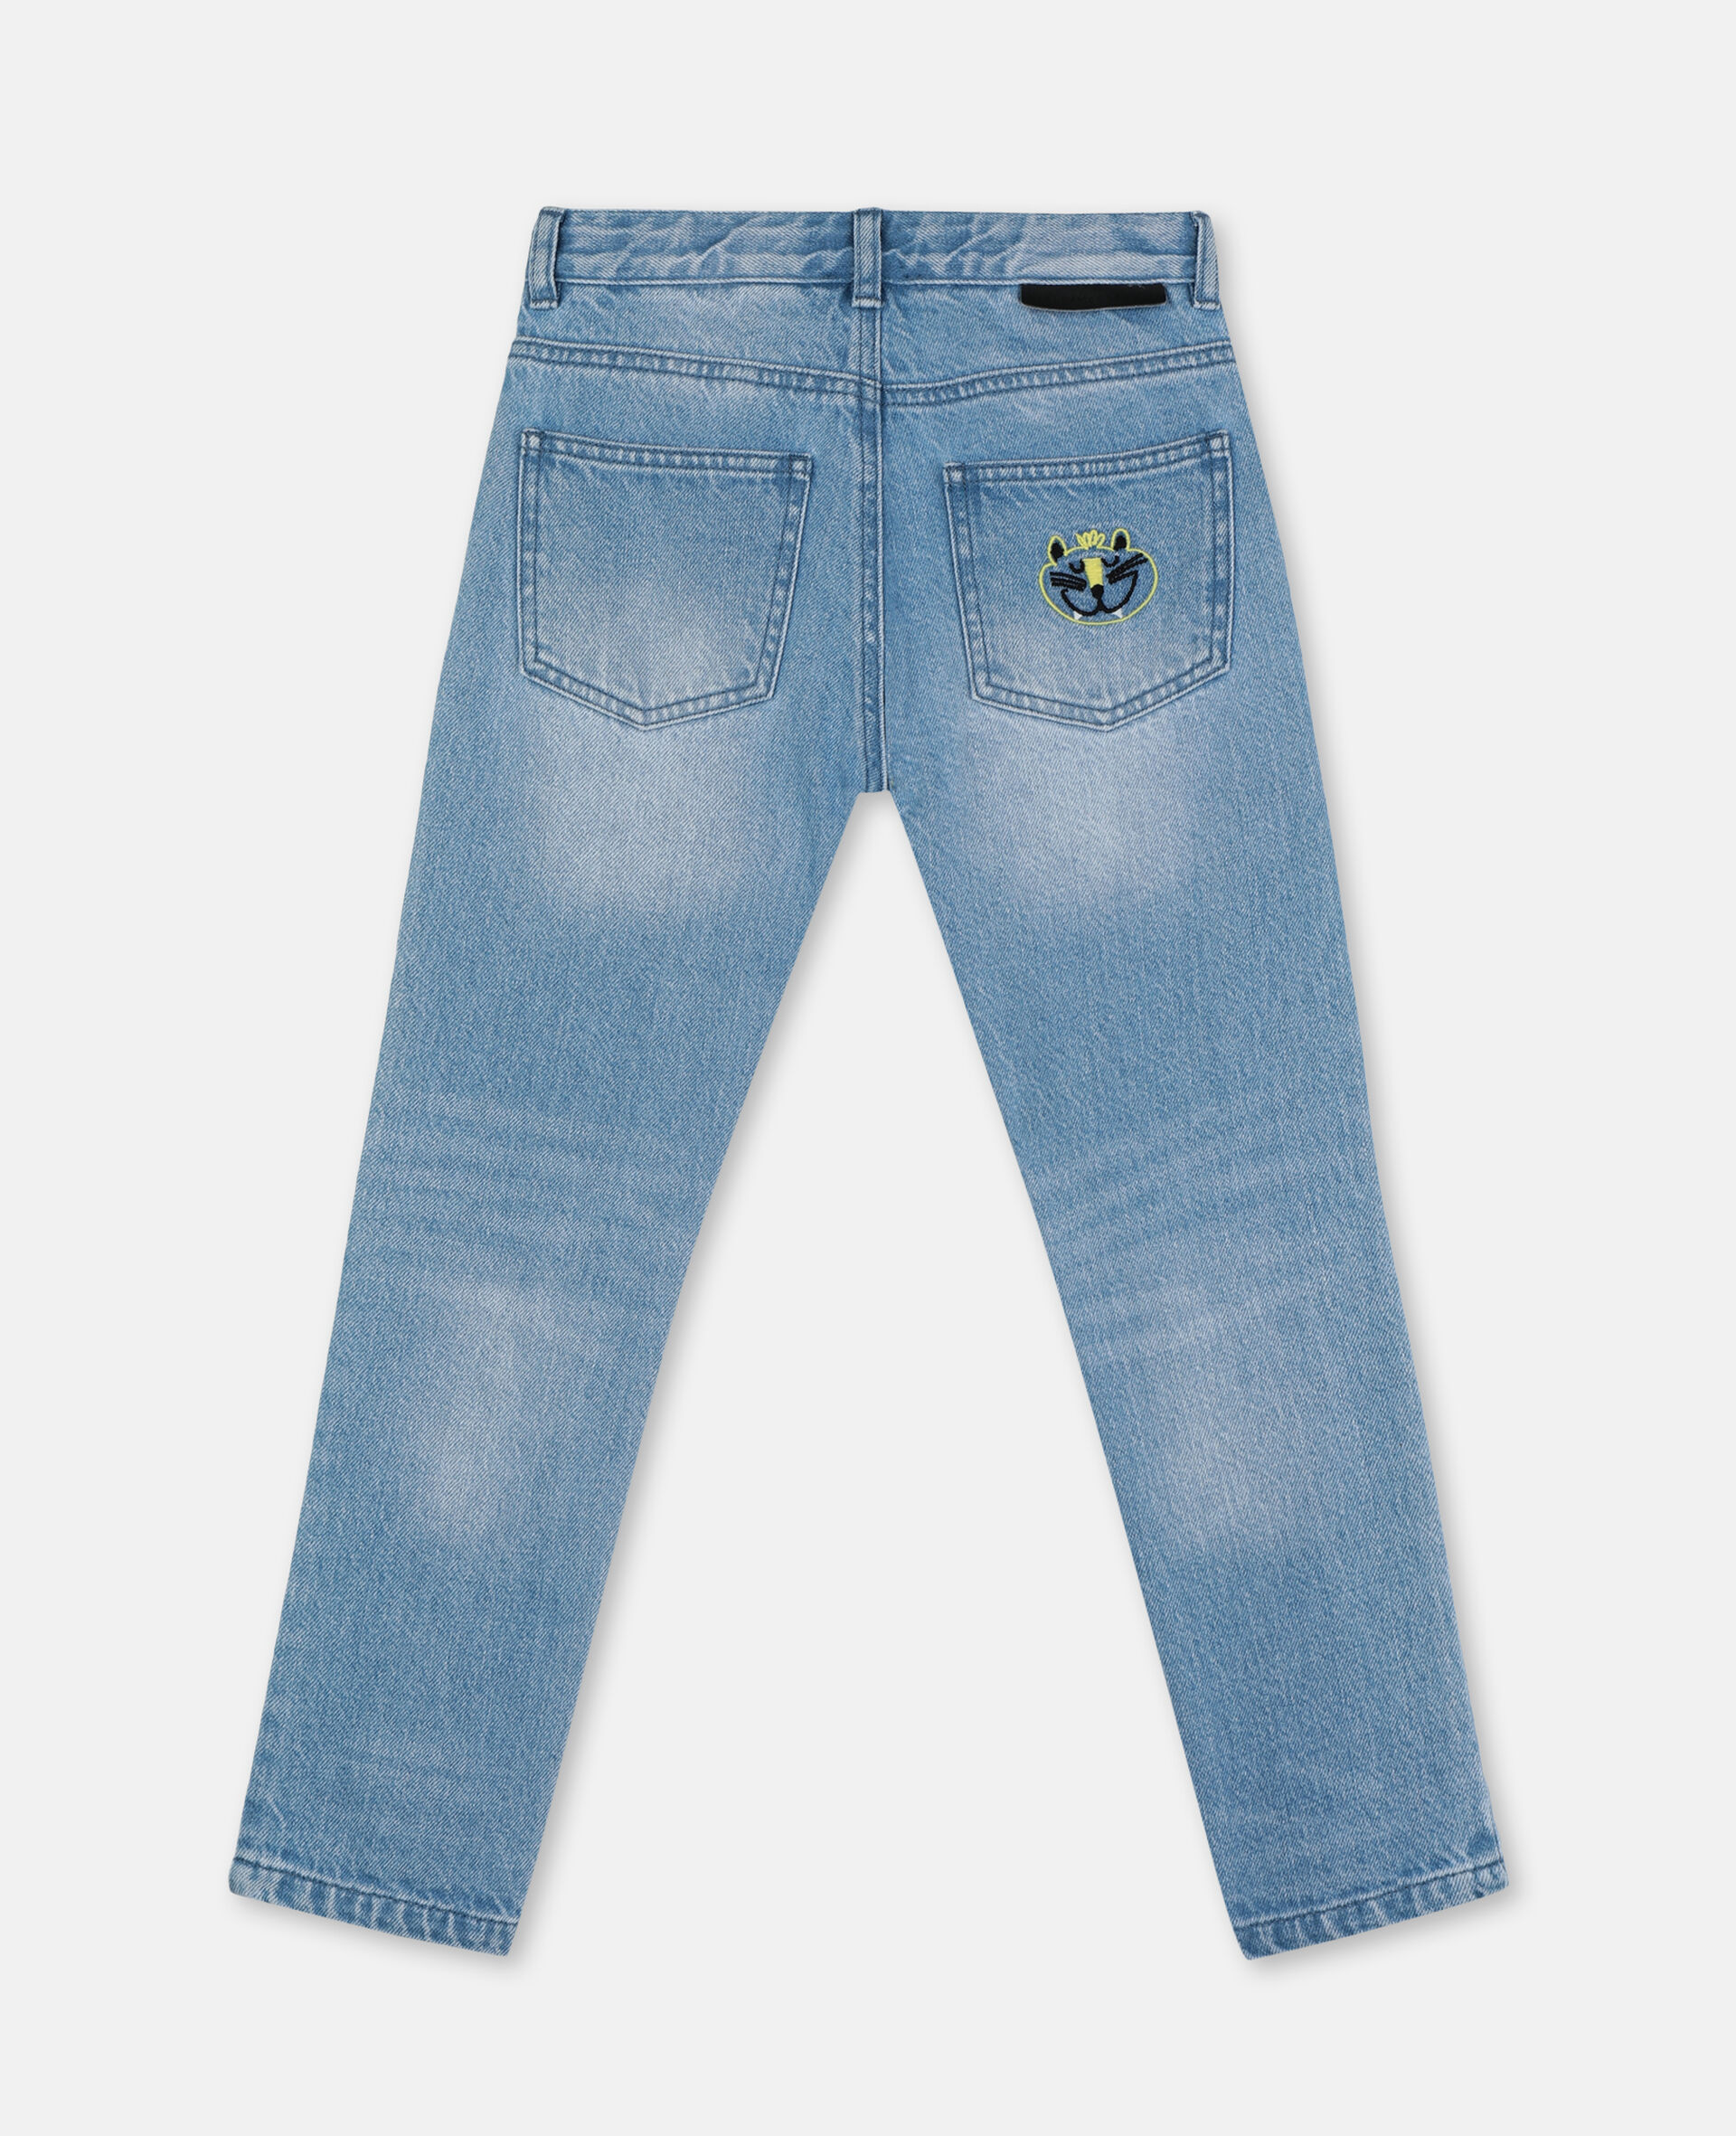 Embroidered Cats Boyfriend Denim Trousers-Blue-large image number 3